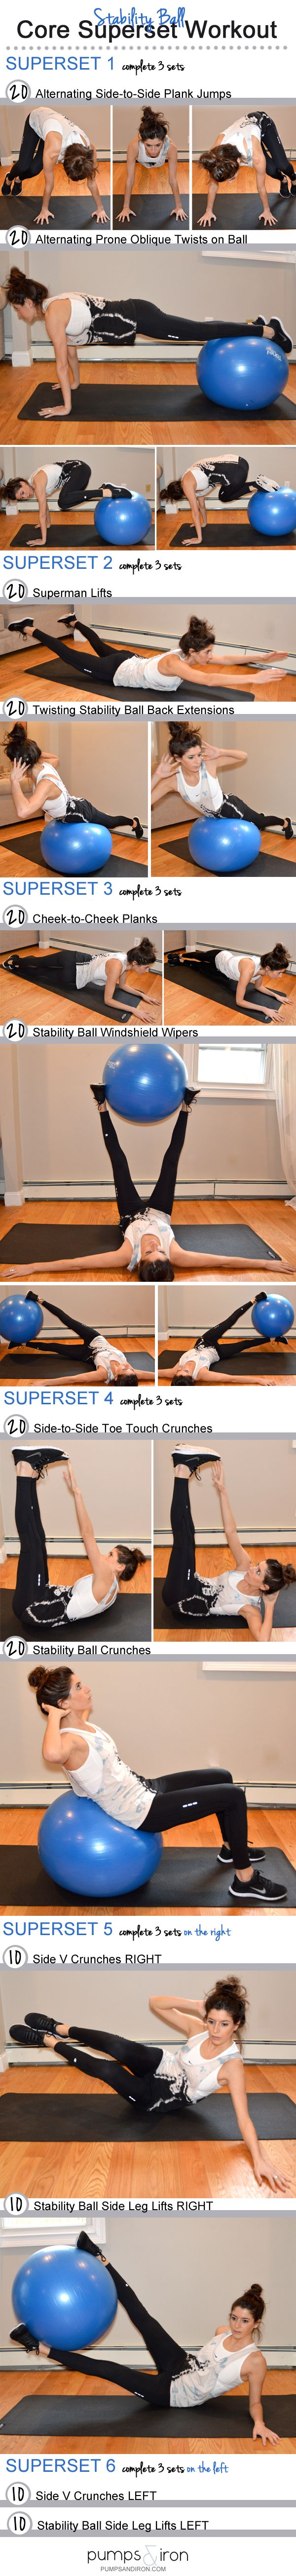 Stability Ball Superset Core Workout started sweating just reading this!! Next Challenge.. Accepted!!!